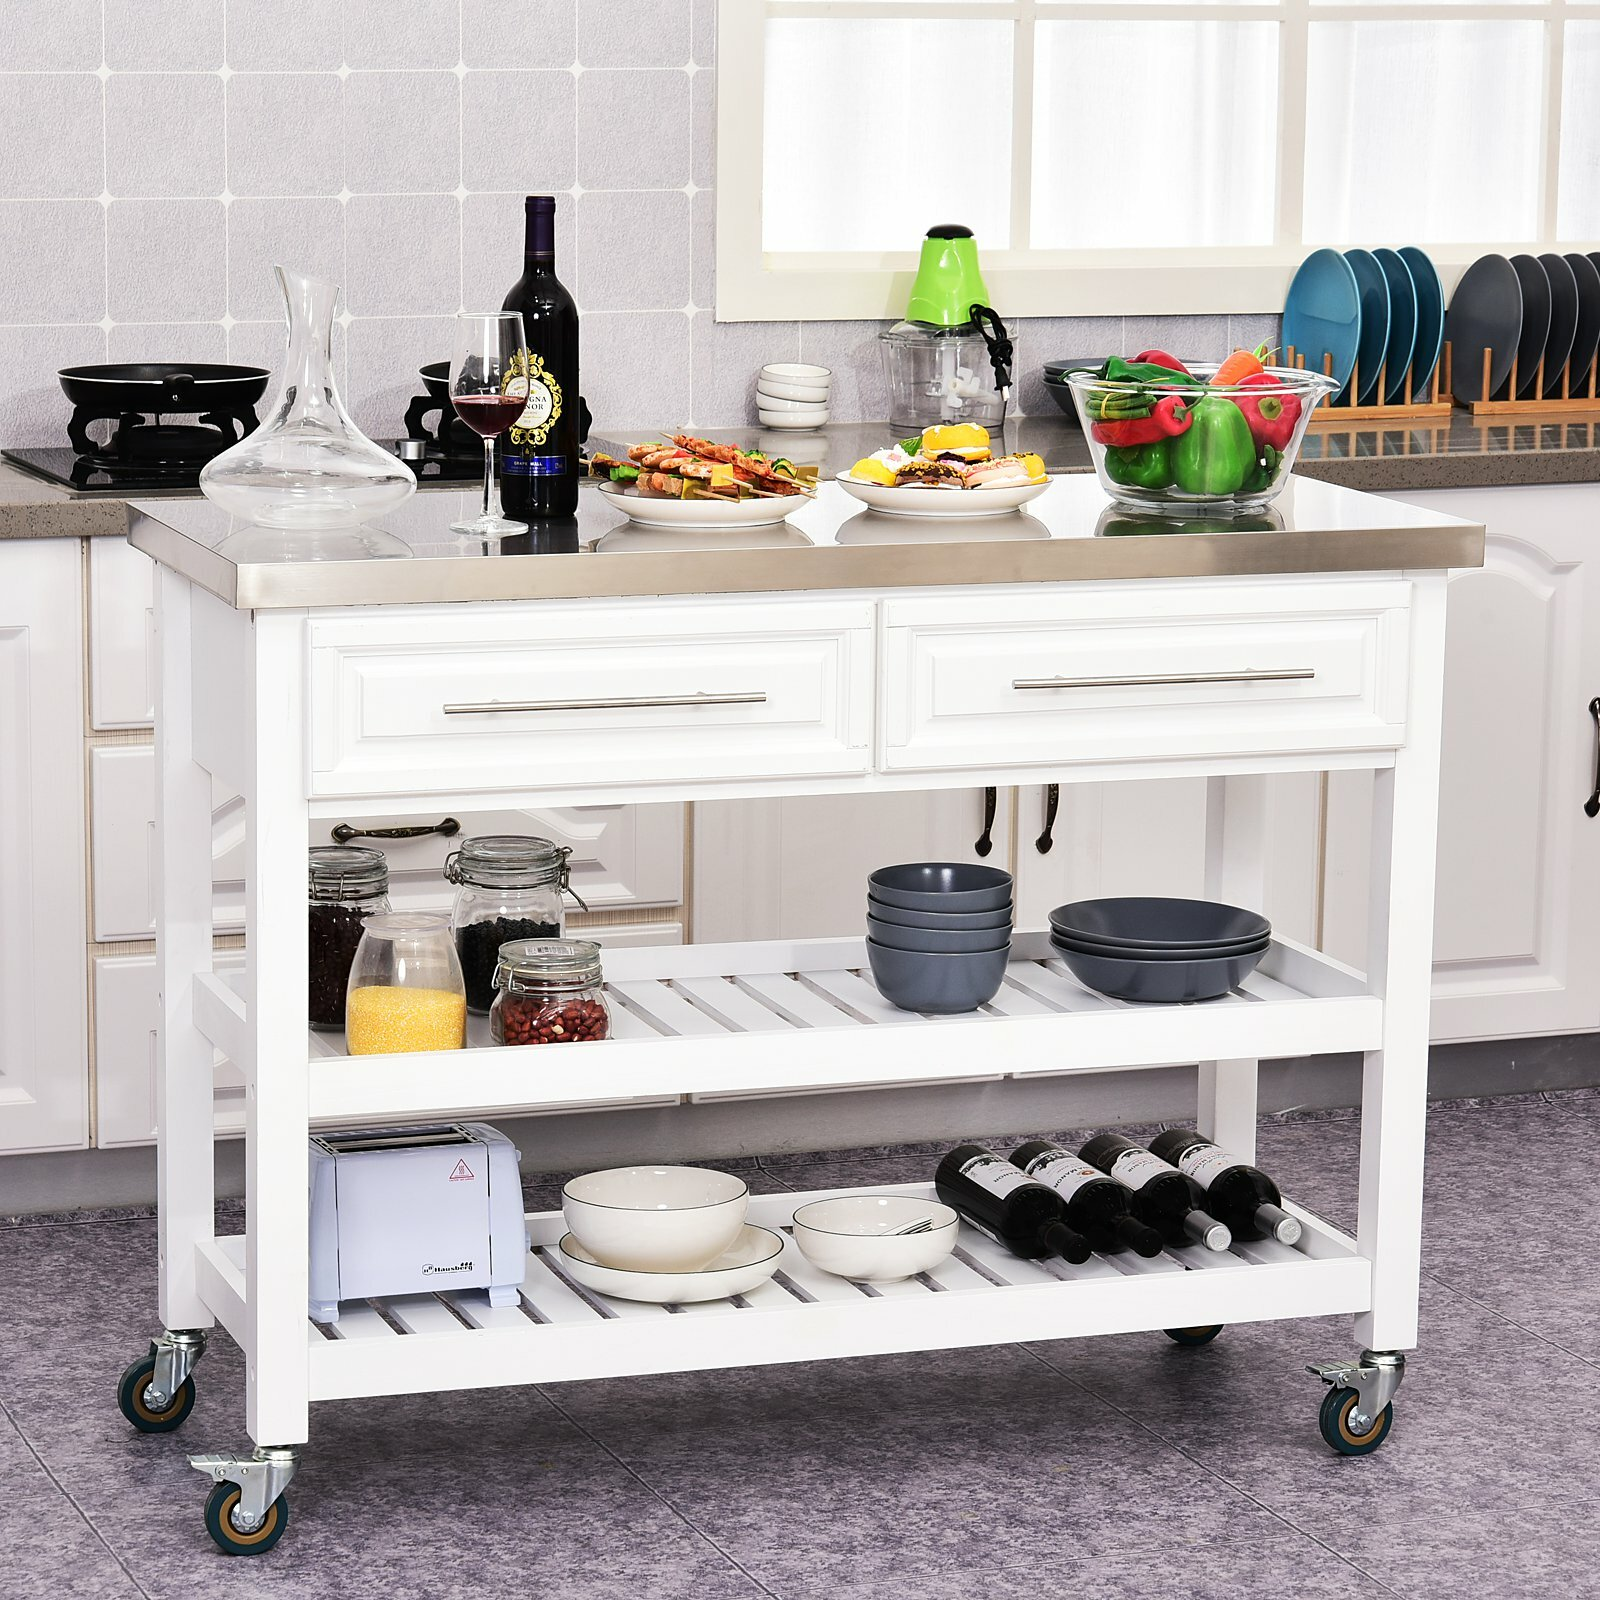 Rosecliff Heights Kourtney 47 25 Kitchen Island With Stainless Steel Top Reviews Wayfair